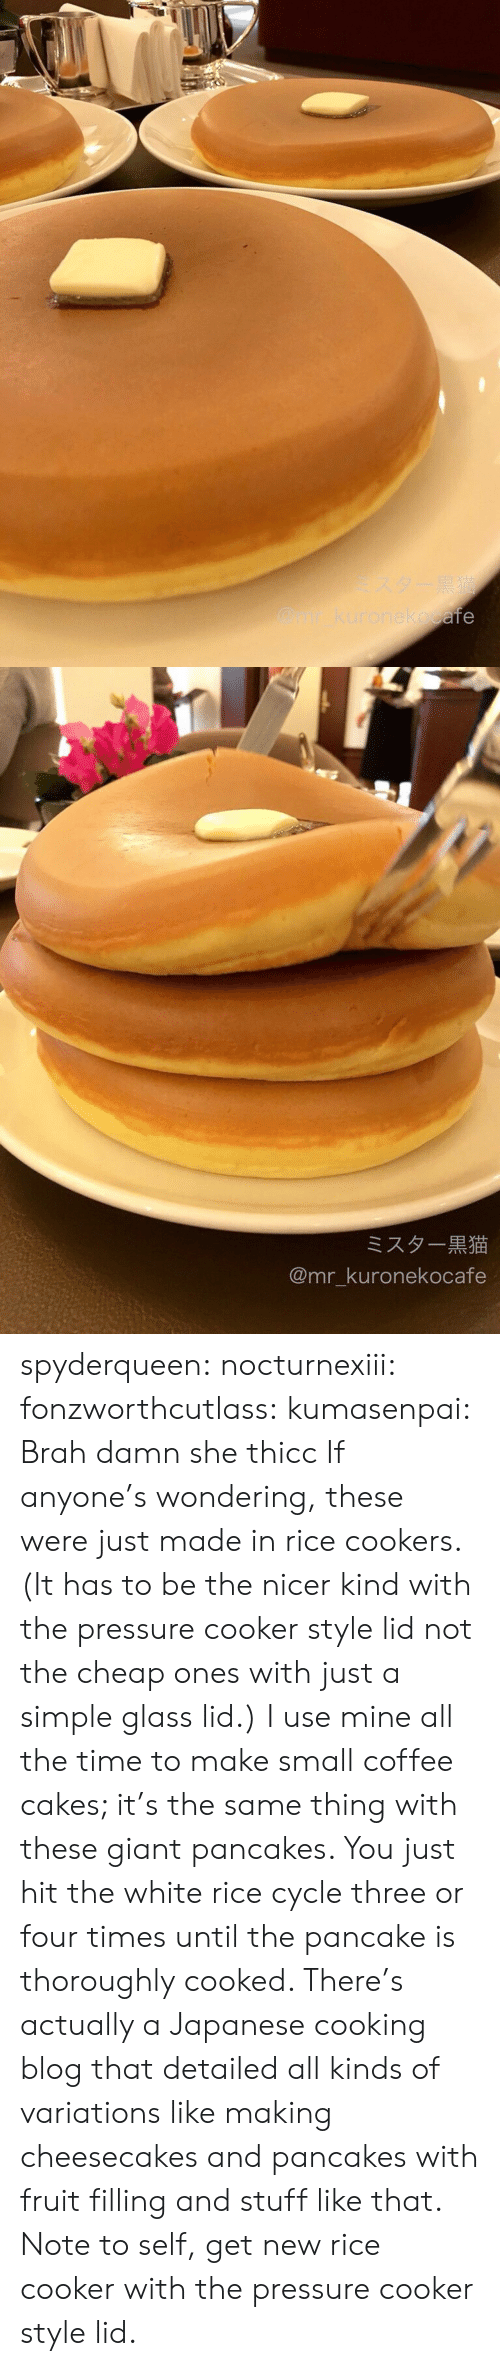 pancake: afe   ミスター黒猫  @mr_kuronekocafe spyderqueen:  nocturnexiii:  fonzworthcutlass:  kumasenpai:  Brah  damn she thicc  If anyone's wondering, these were just made in rice cookers. (It has to be the nicer kind with the pressure cooker style lid not the cheap ones with just a simple glass lid.) I use mine all the time to make small coffee cakes; it's the same thing with these giant pancakes. You just hit the white rice cycle three or four times until the pancake is thoroughly cooked. There's actually a Japanese cooking blog that detailed all kinds of variations like making cheesecakes and pancakes with fruit filling and stuff like that.  Note to self, get new rice cooker with the pressure cooker style lid.